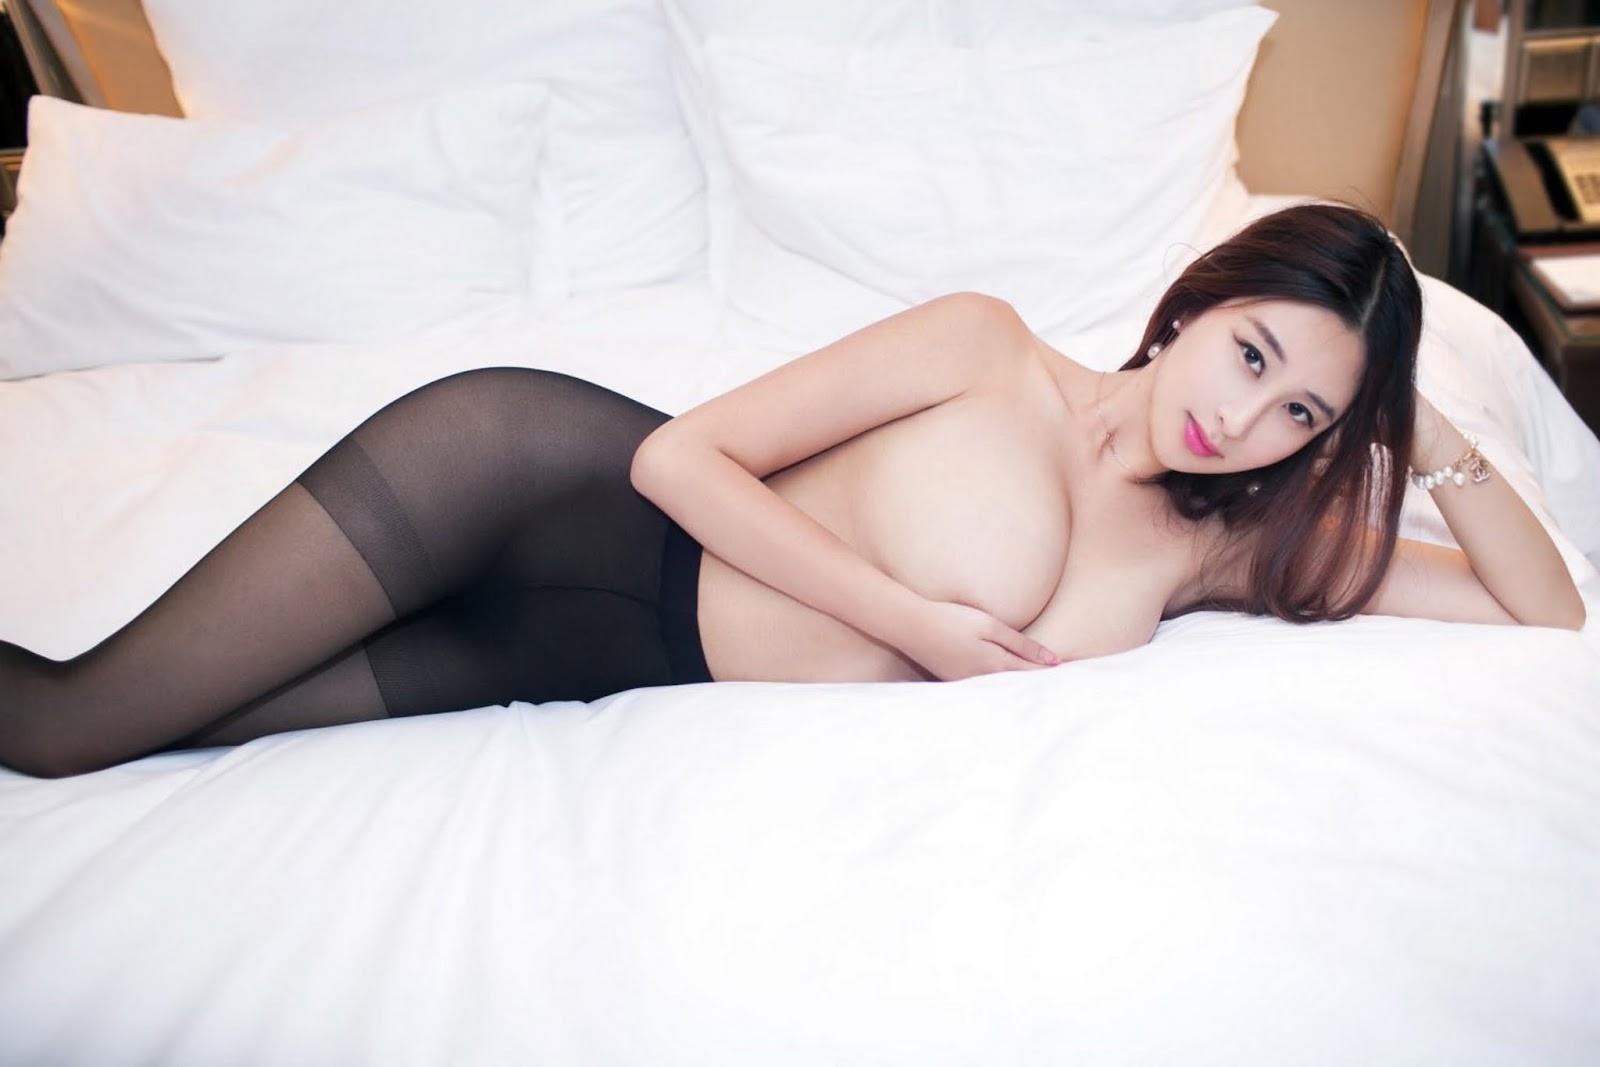 30 - Lake Model Sexy TUIGIRL NO.52 Hot